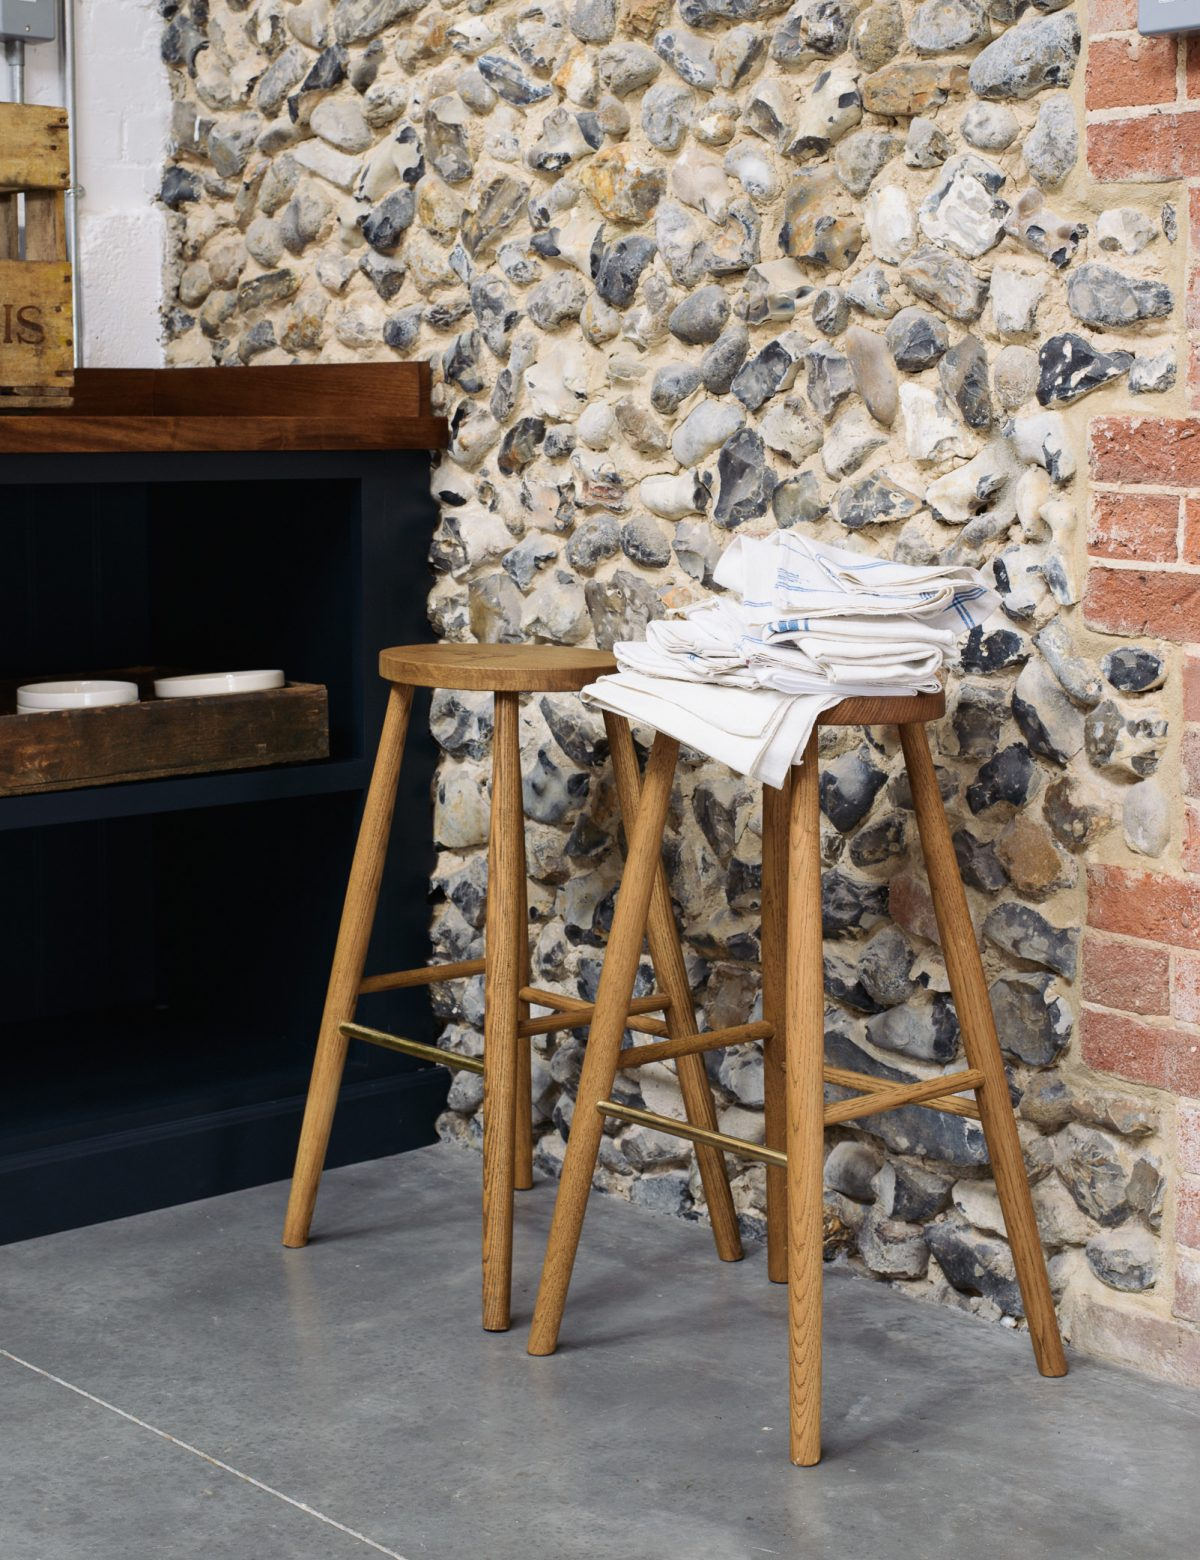 The original cobbled wall adds so much charm and authenticity to this kitchen.